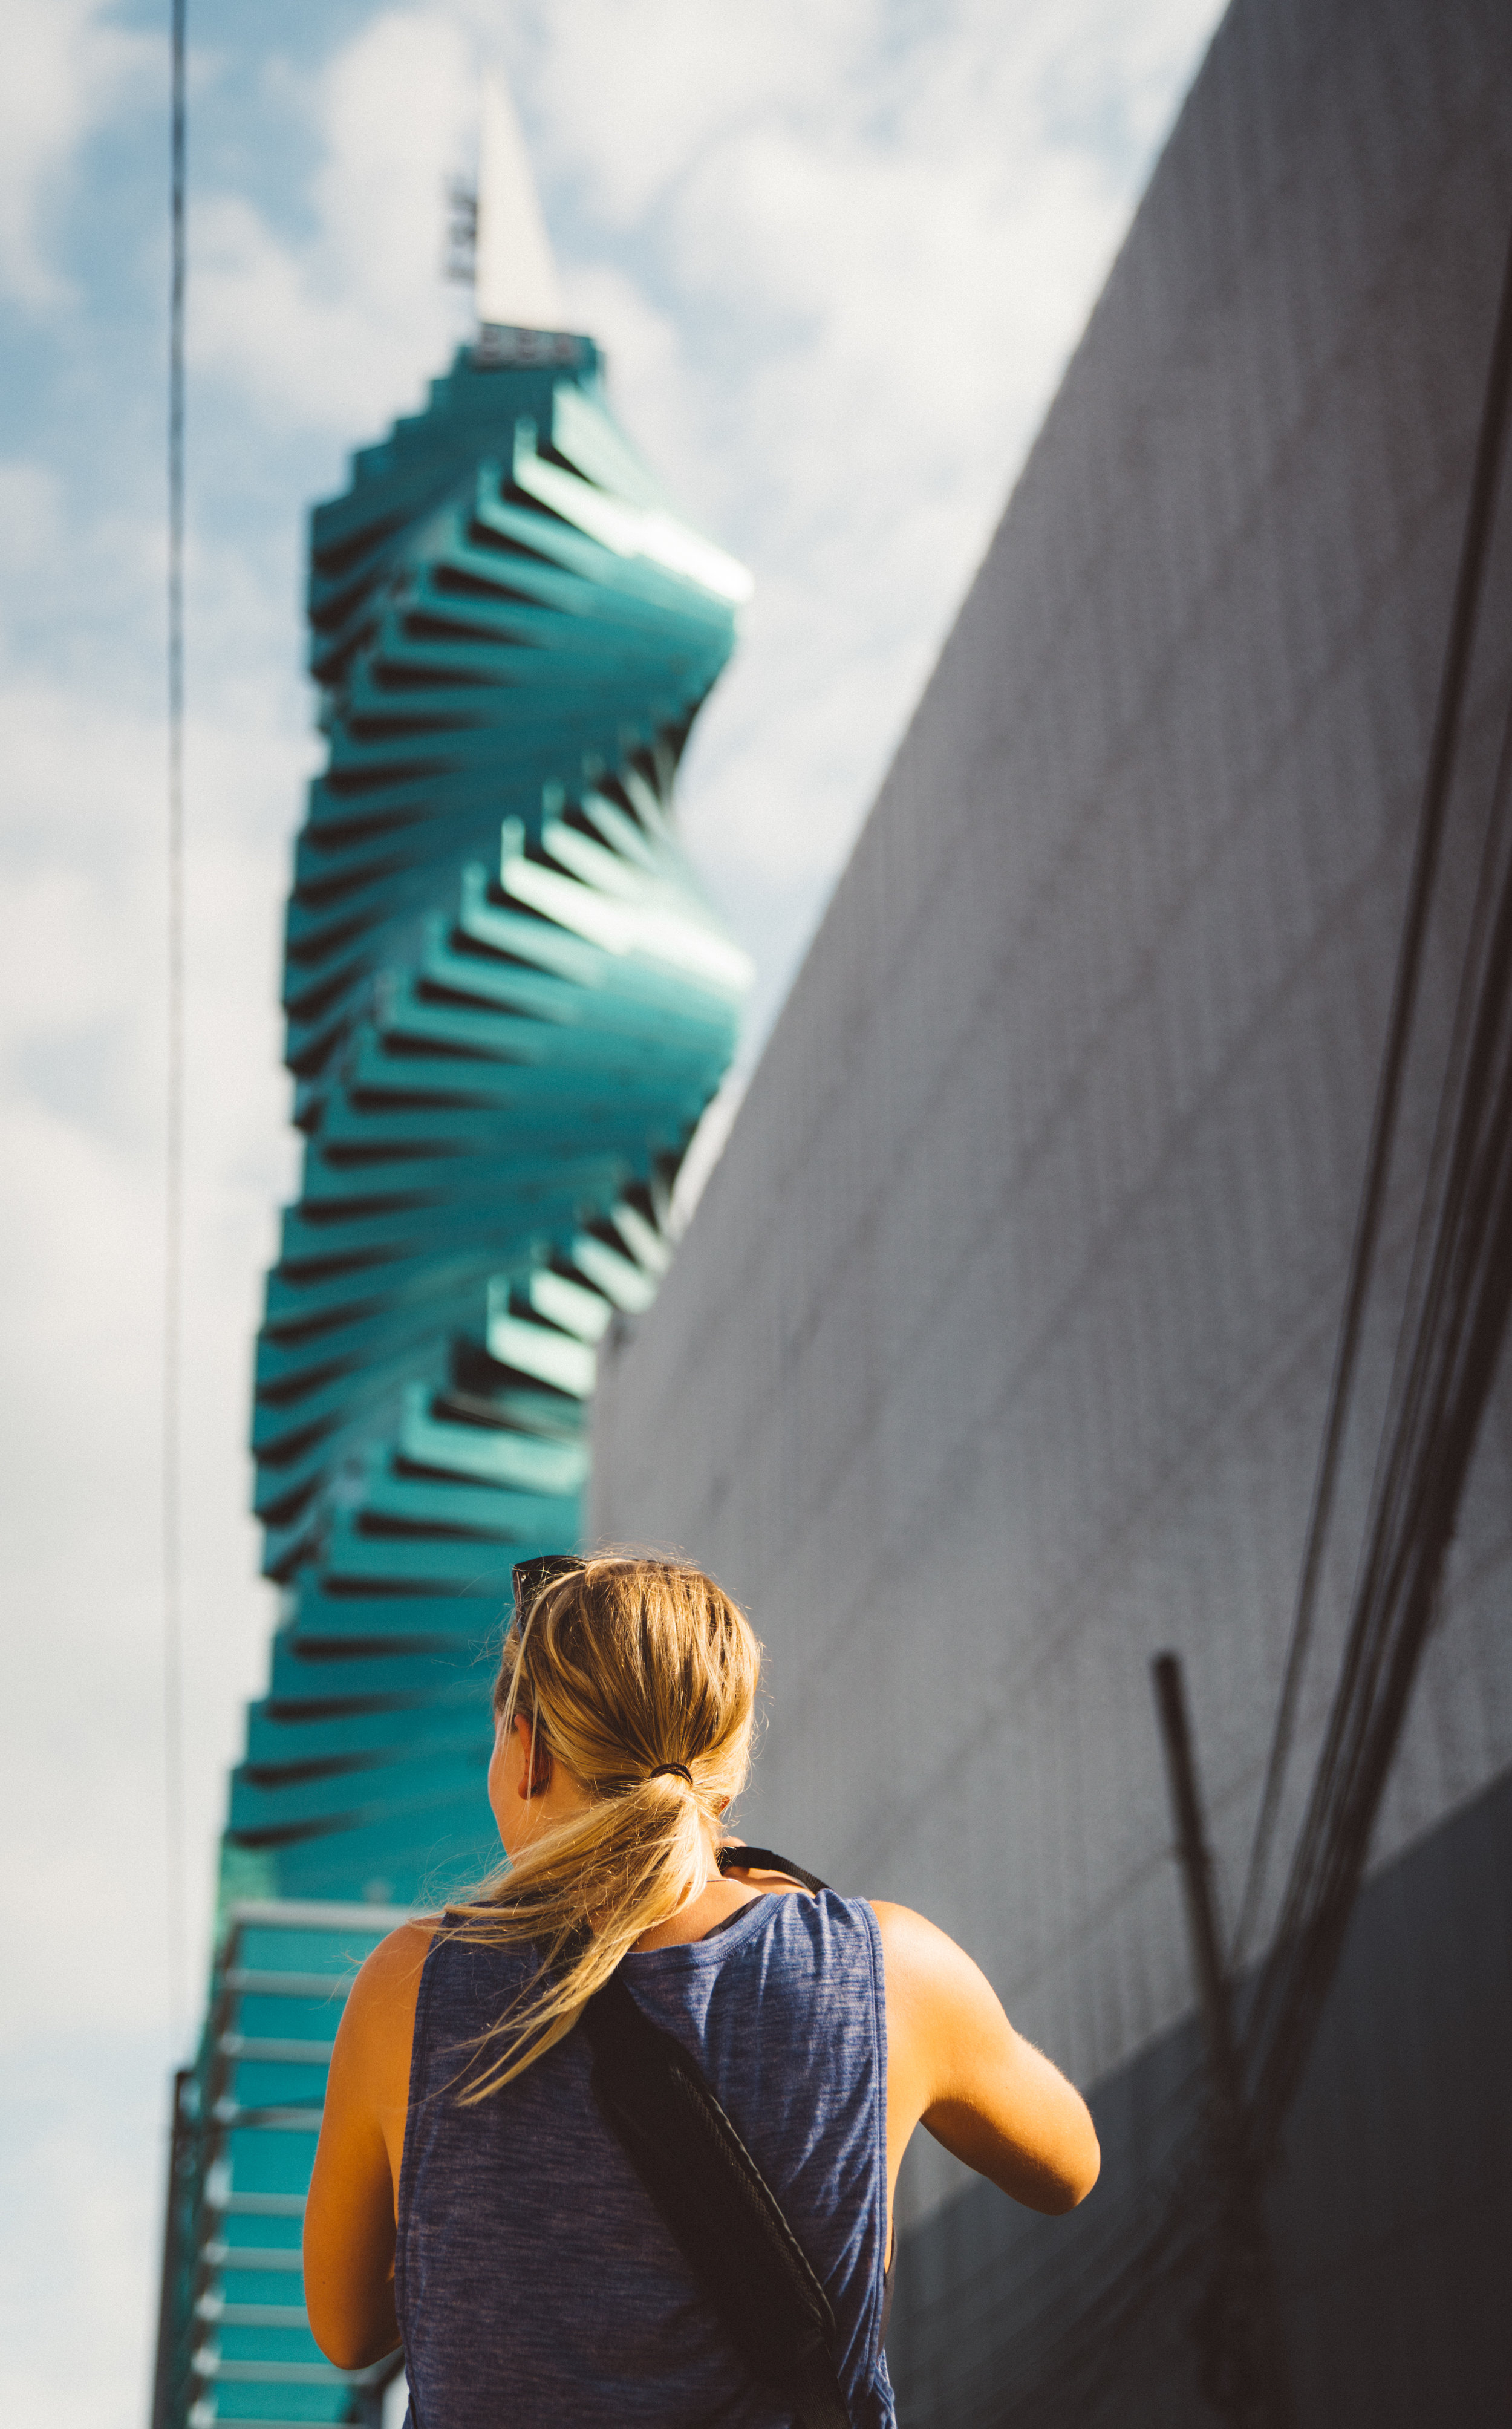 Danielle capturing the iconic F&F Tower.